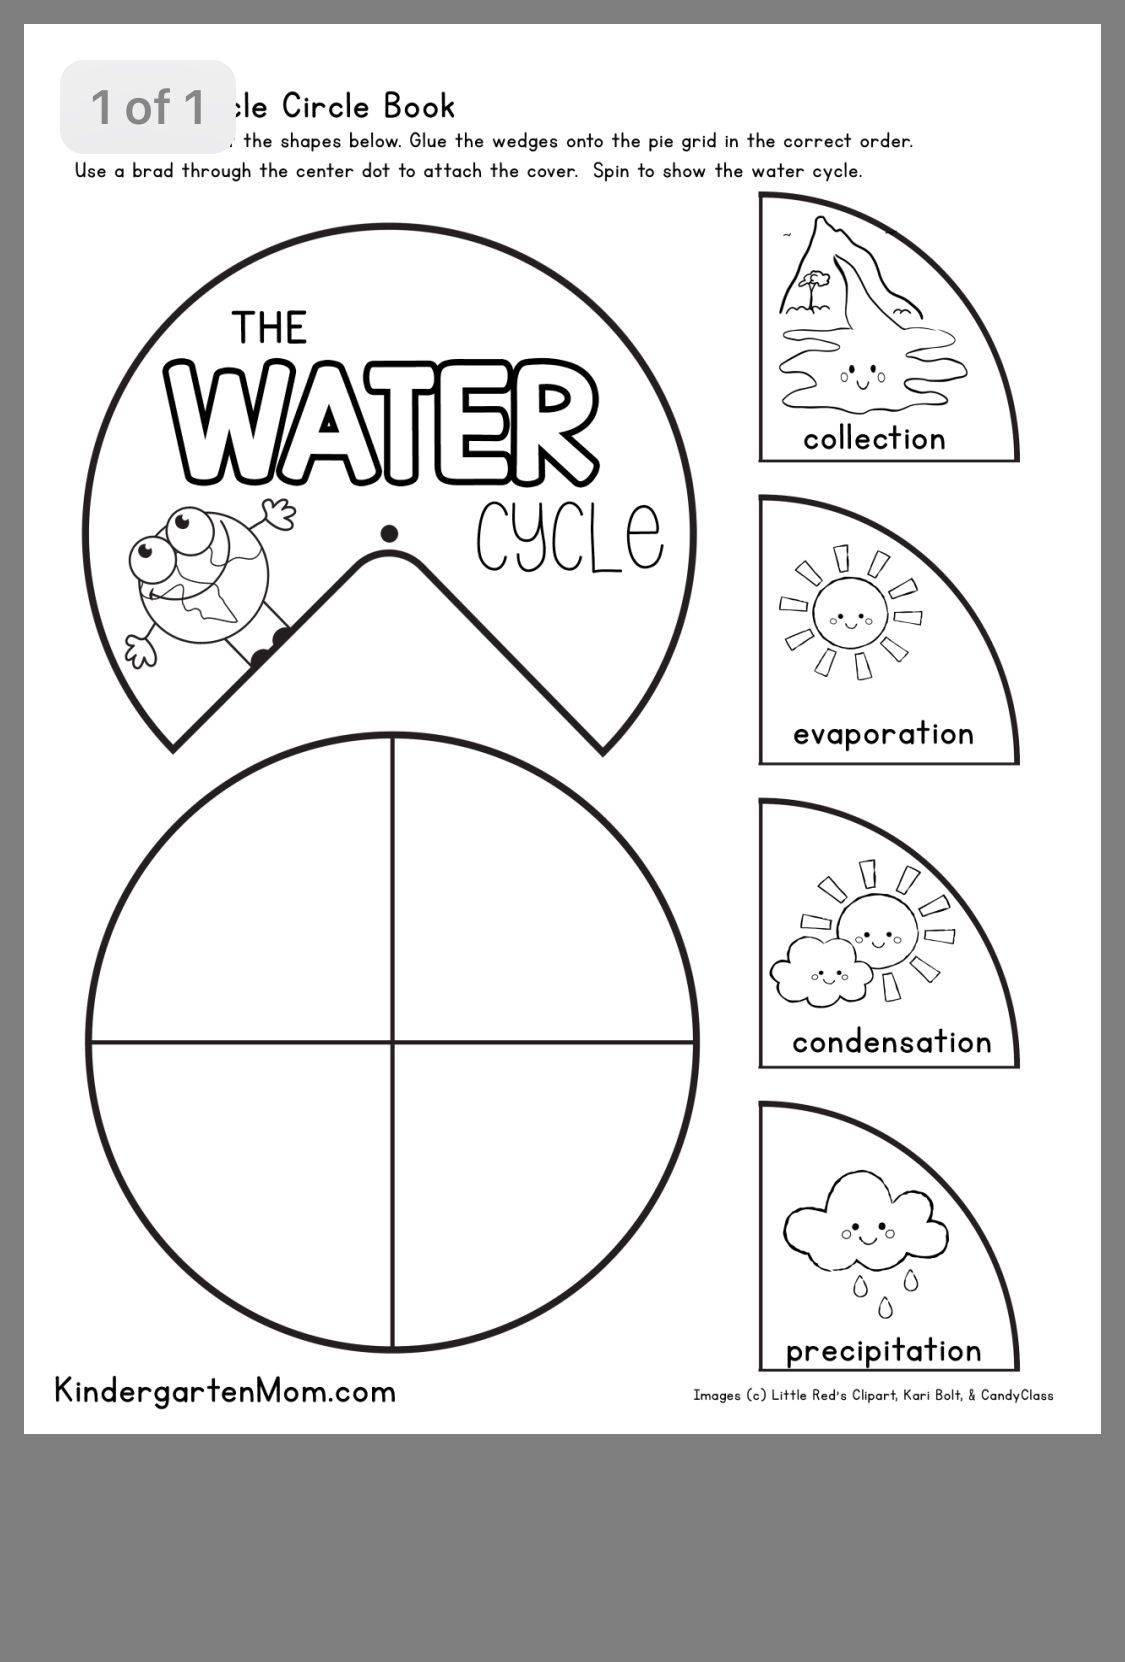 Predownload: Water Cycle Worksheets For Kindergarten Worksheet For Kindergarten Water Cycle Water Cycle Worksheet Kindergarten Worksheets [ 1662 x 1125 Pixel ]